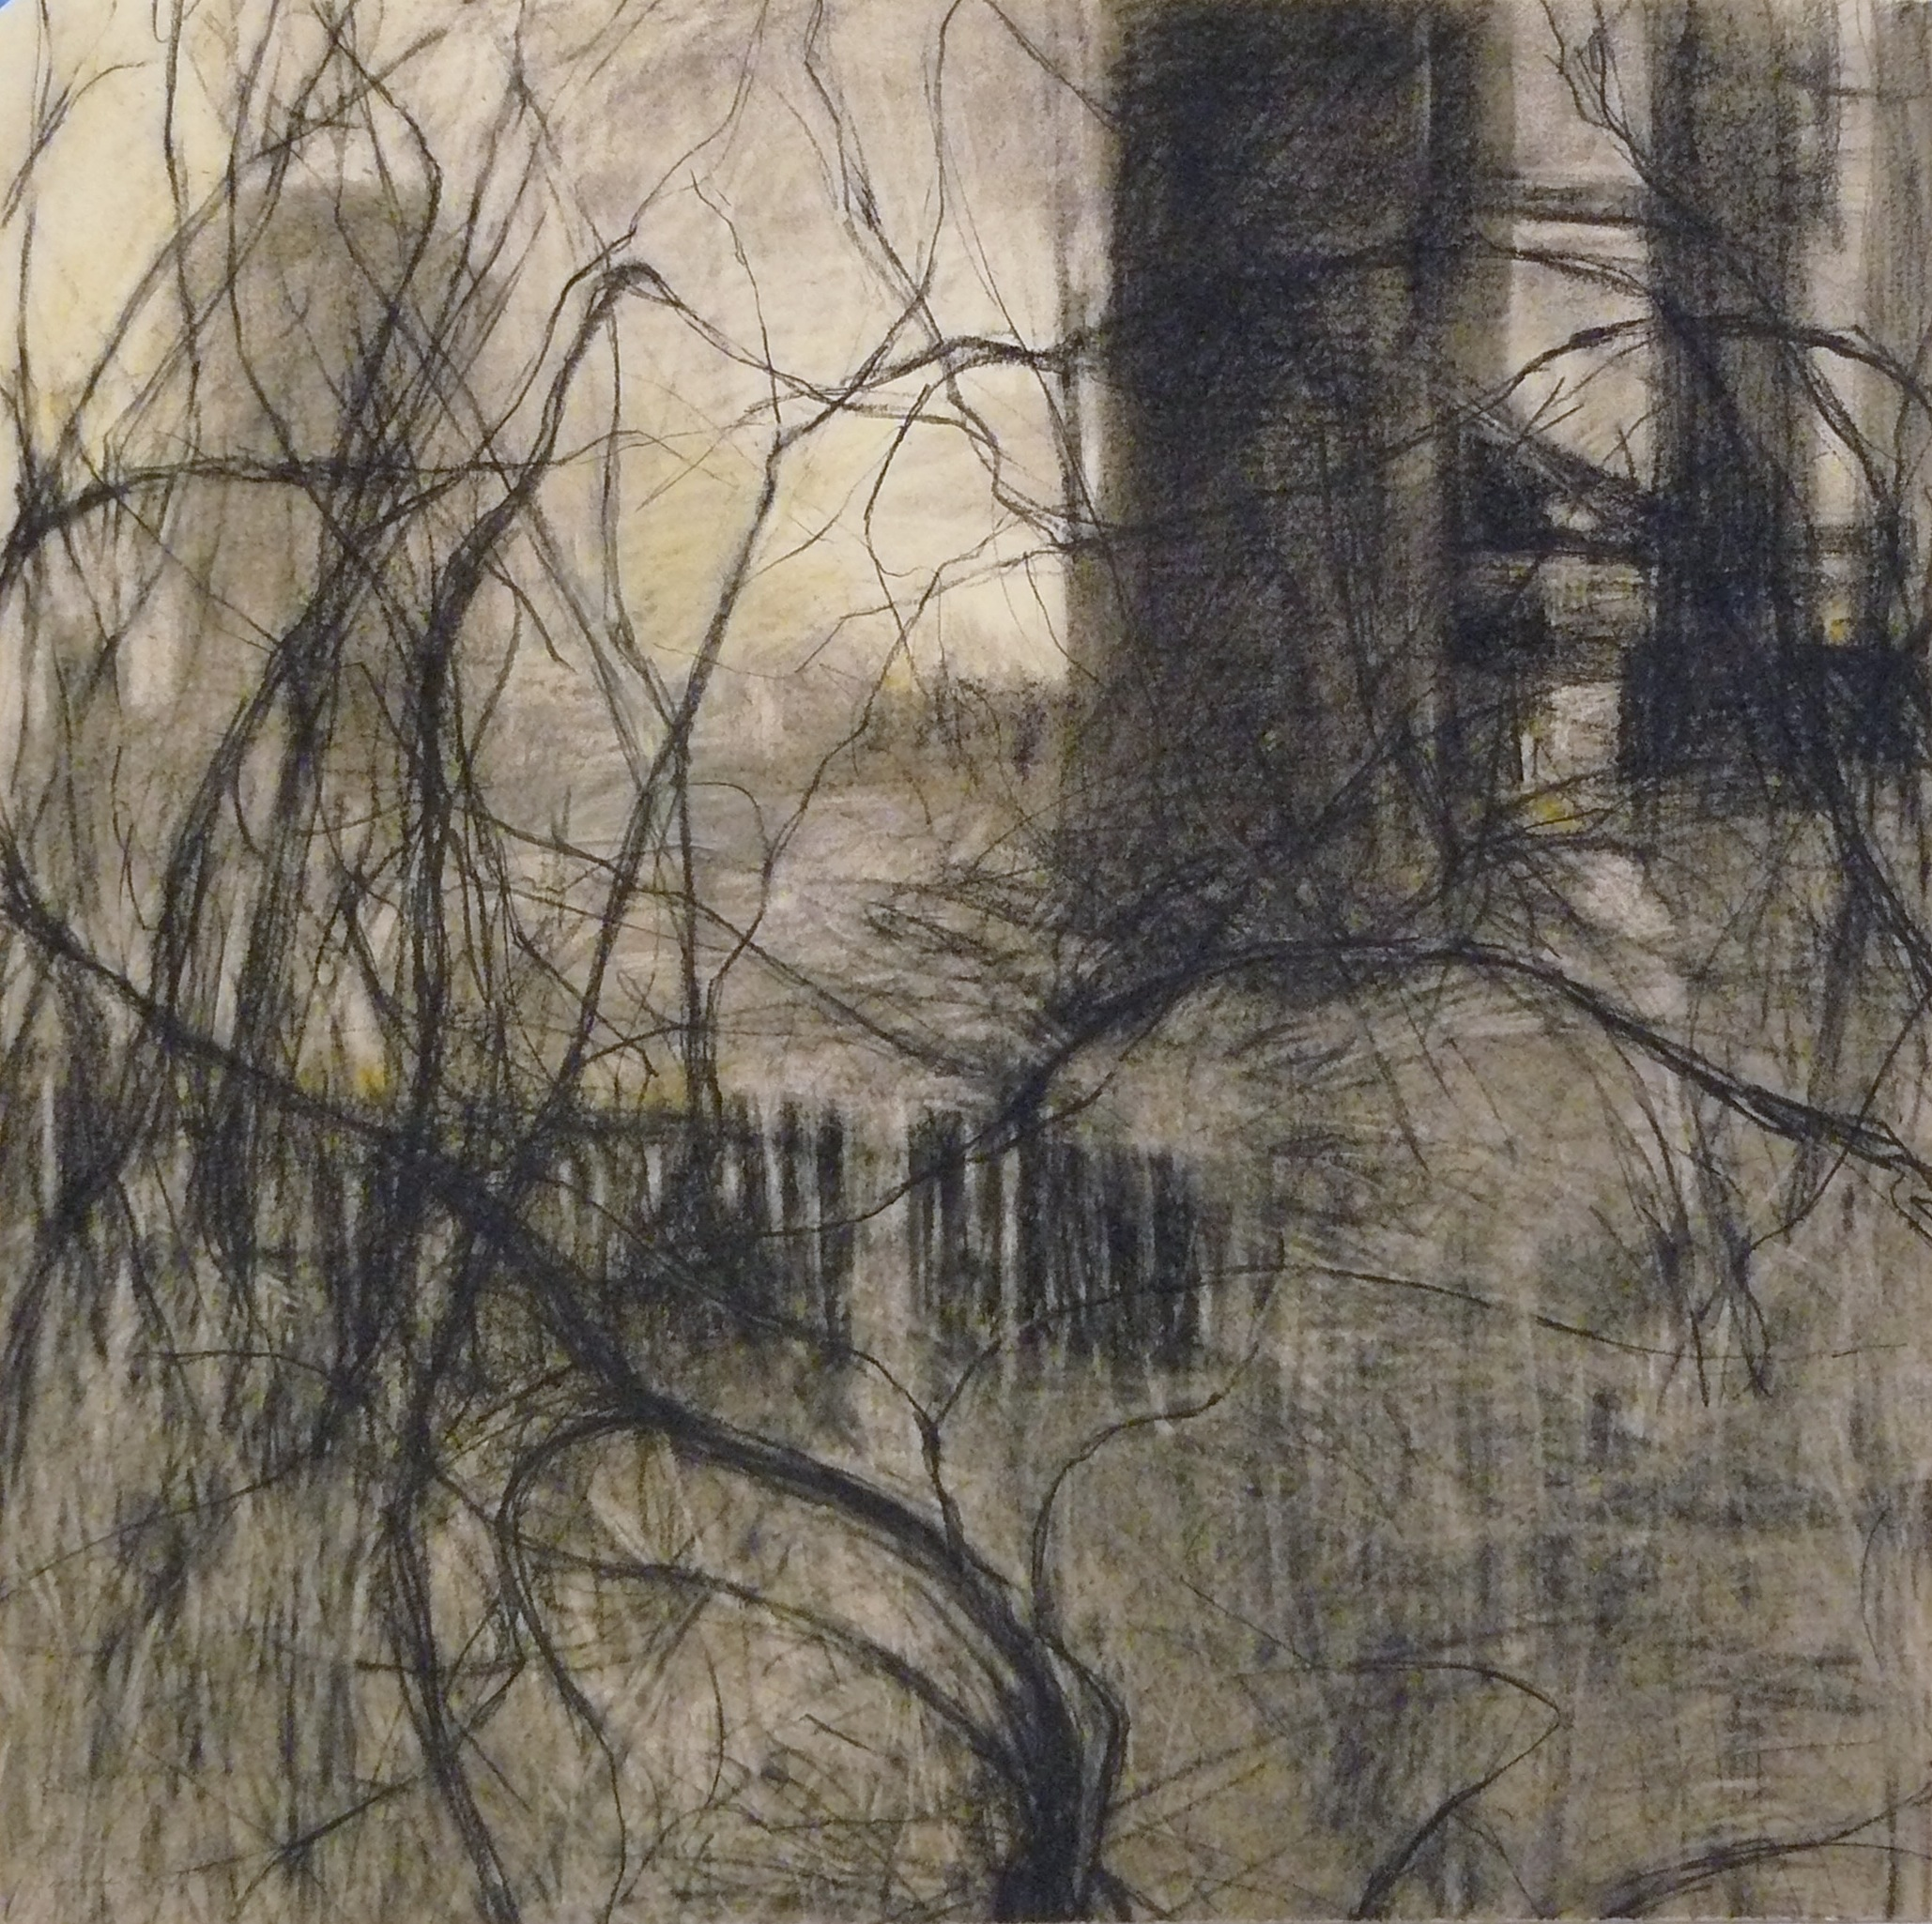 charcoal drawing of industrial building in a landscape